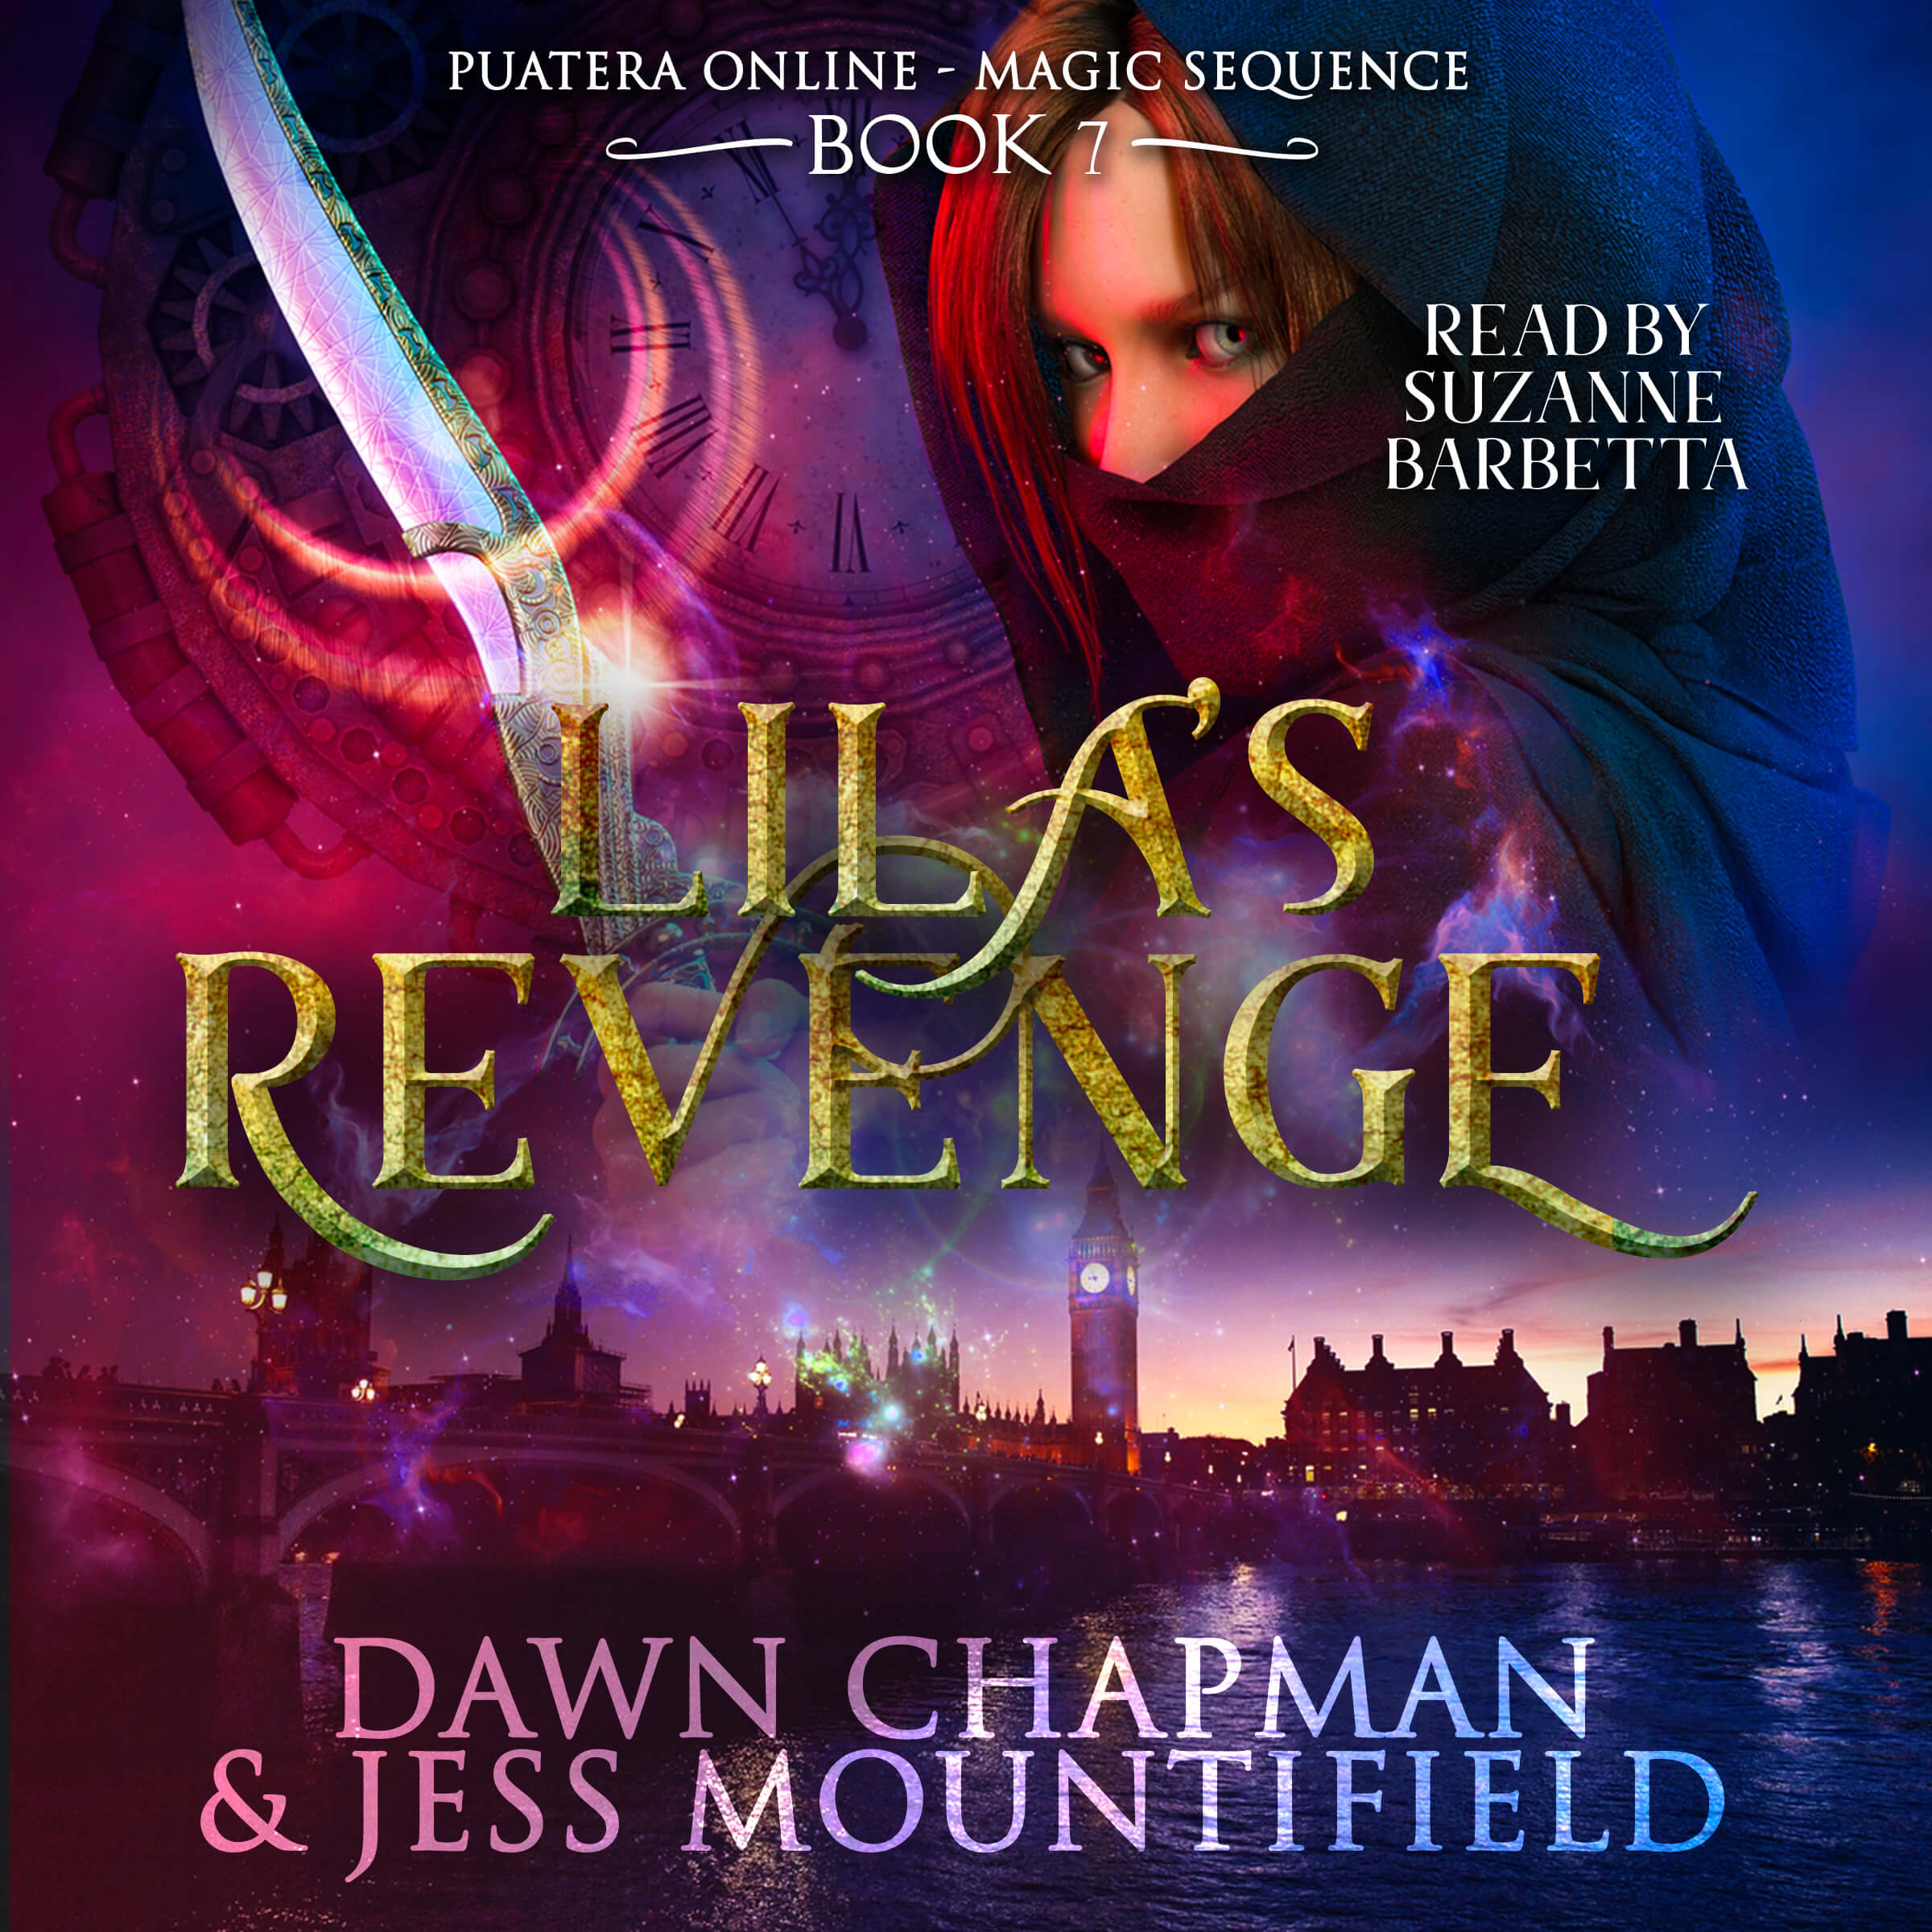 Lila's Revenge Audiobook Final